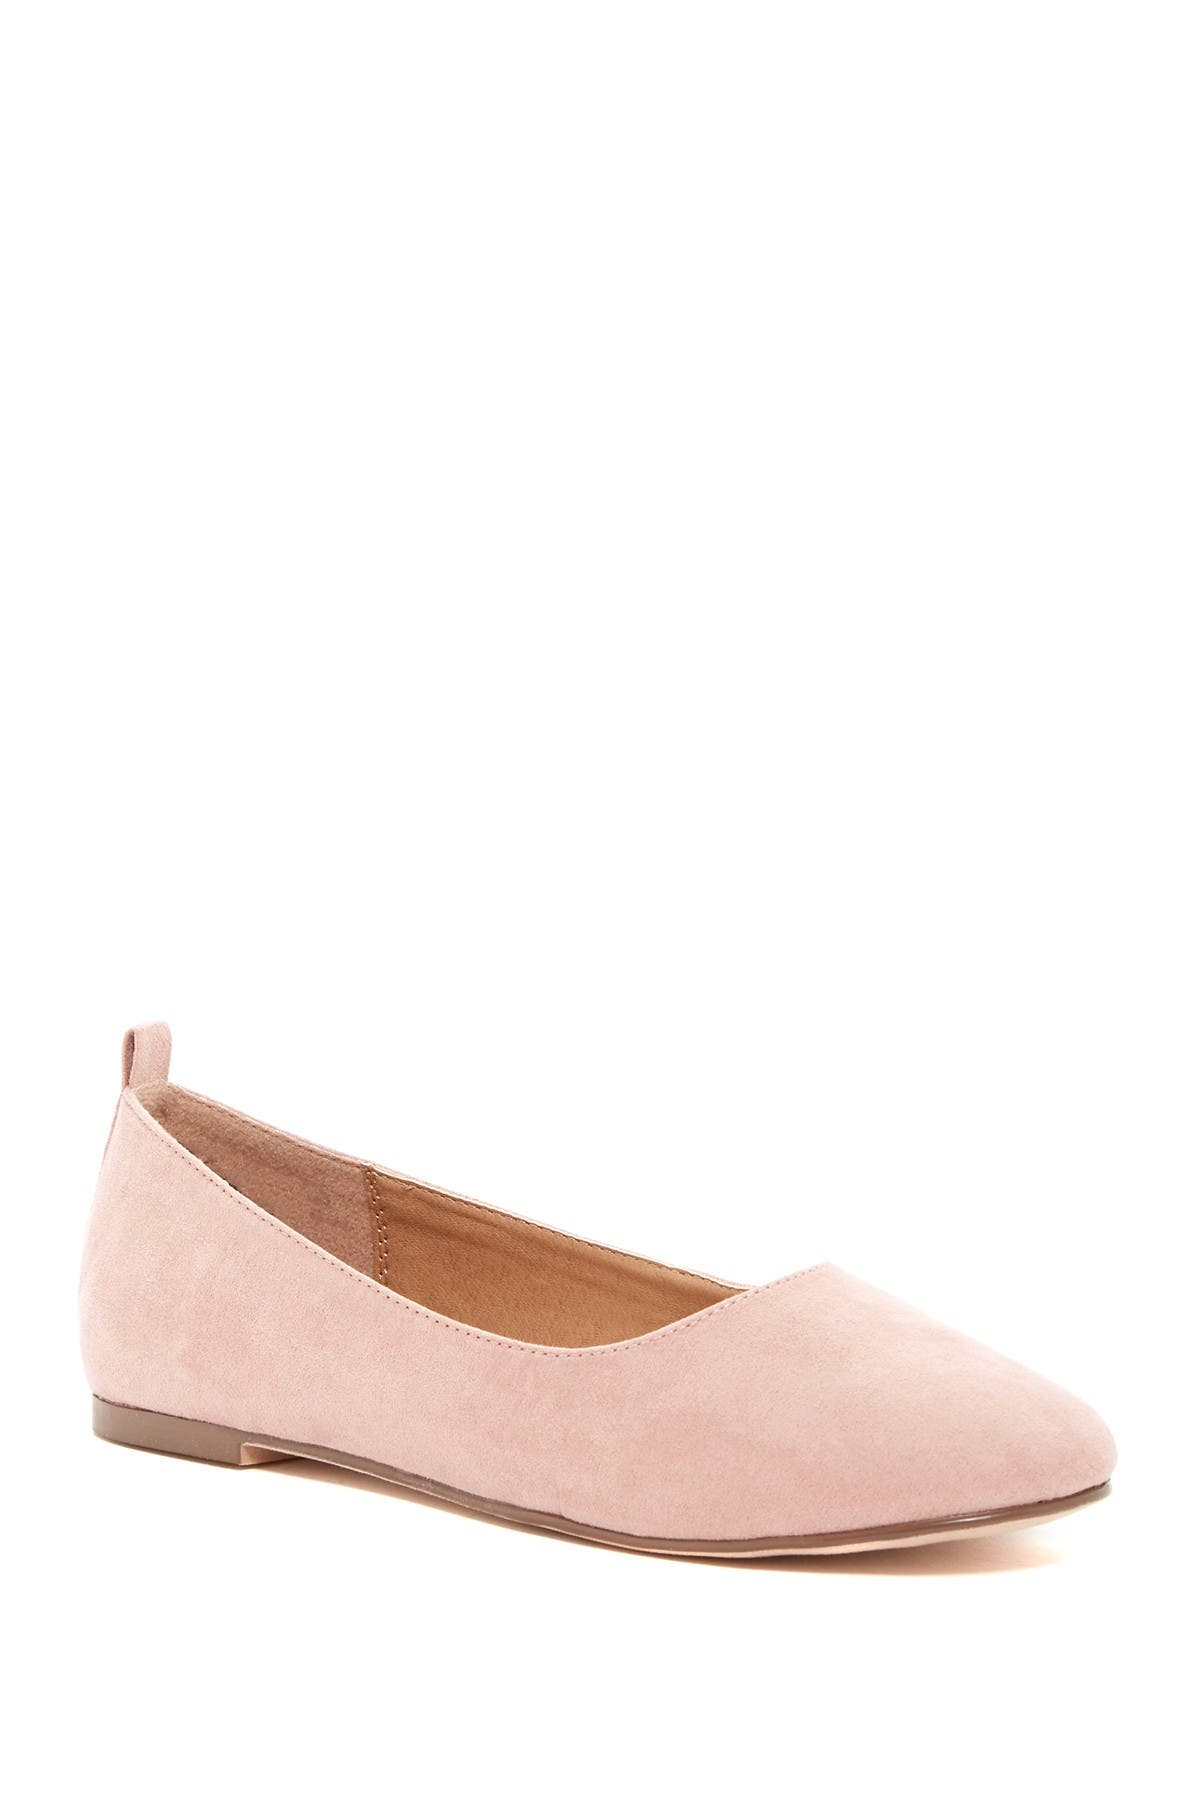 Image of Abound Gracey Slip-On Flat